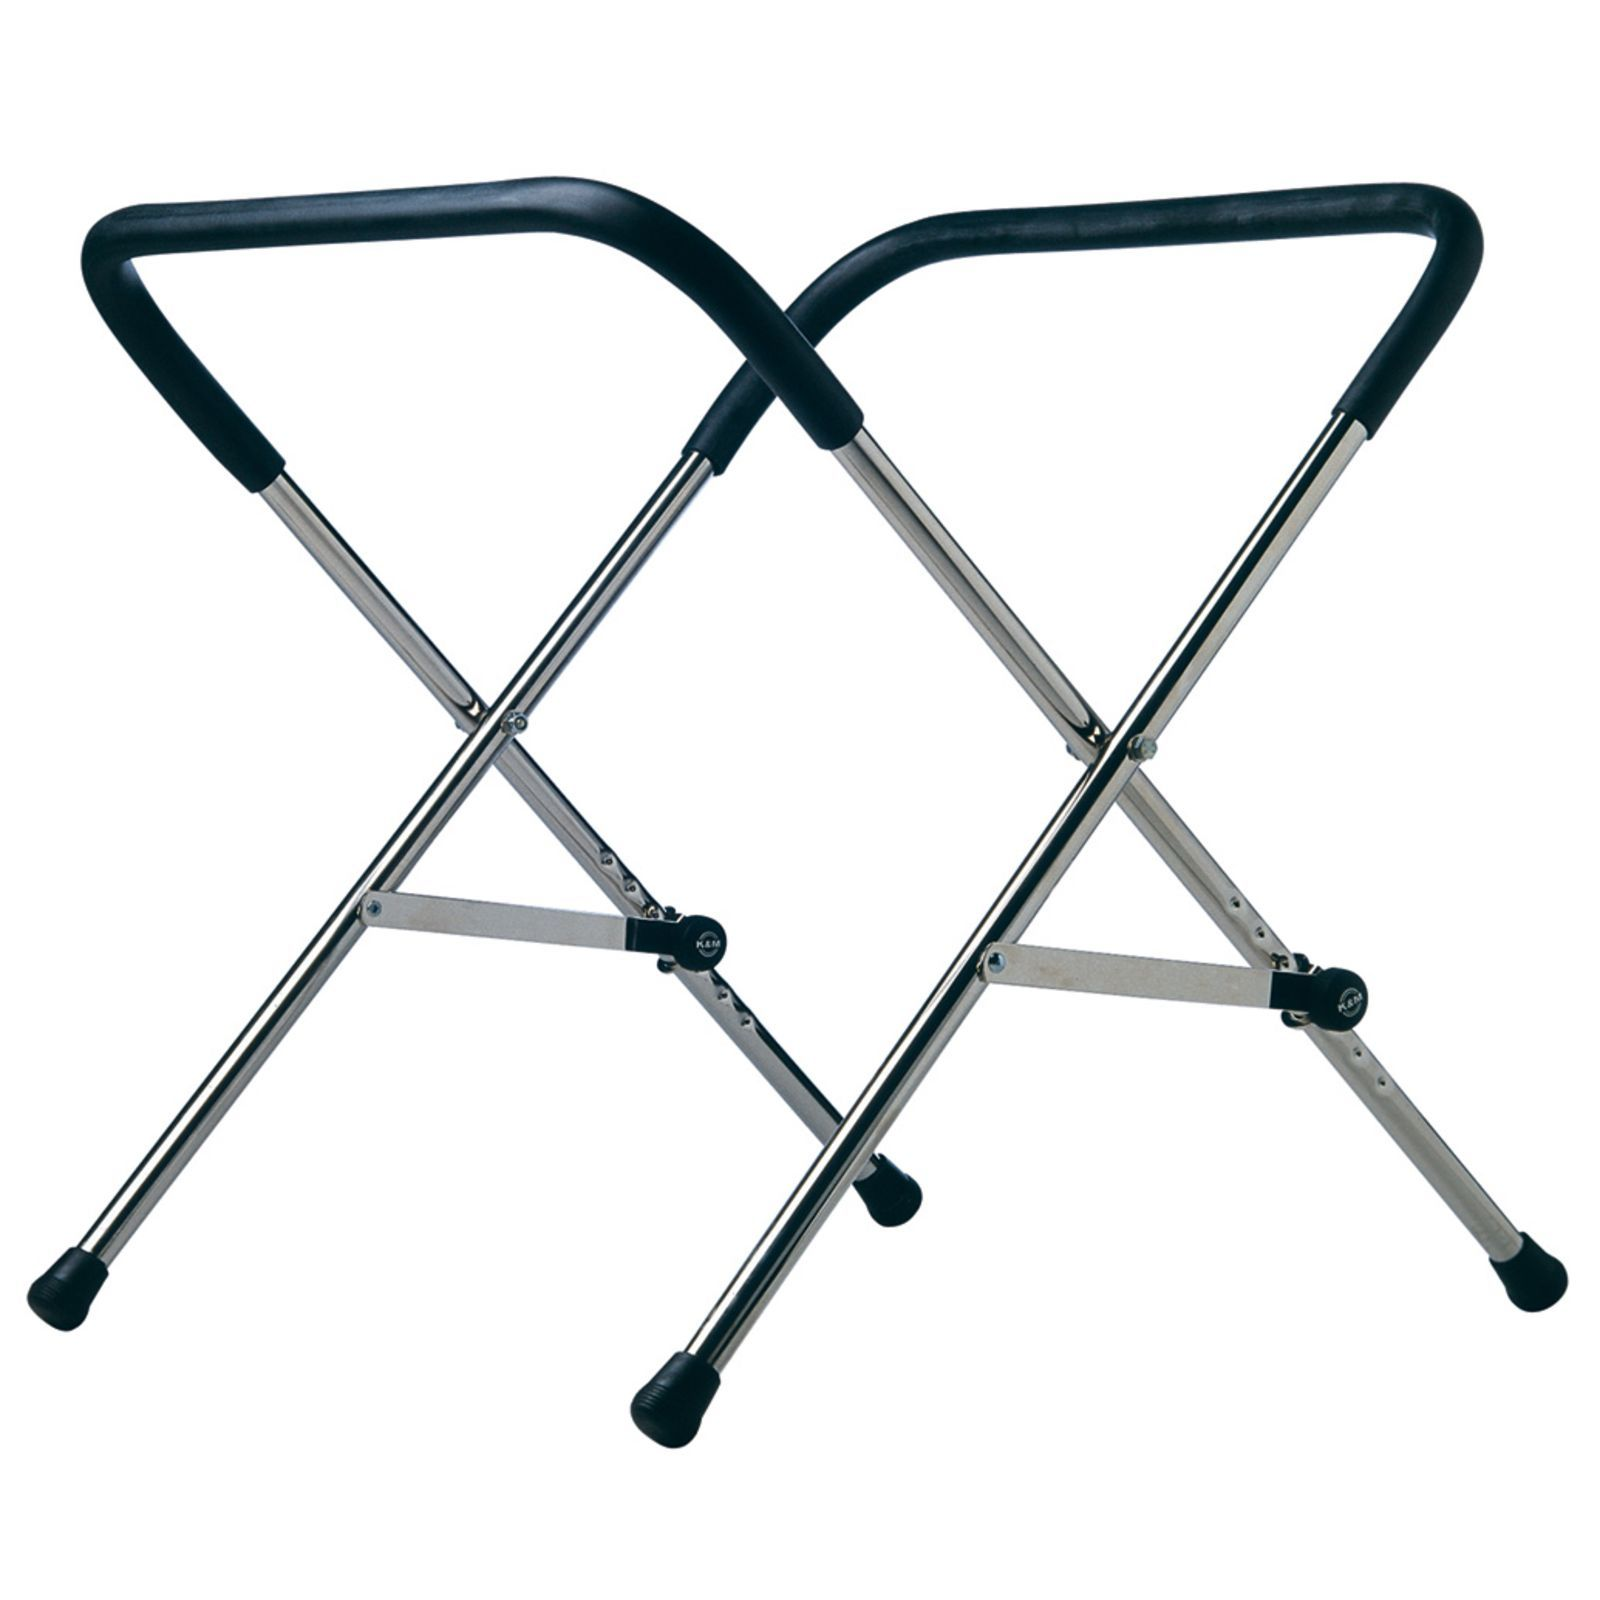 König & Meyer Drum Stand 133/3 for marching drums Product Image